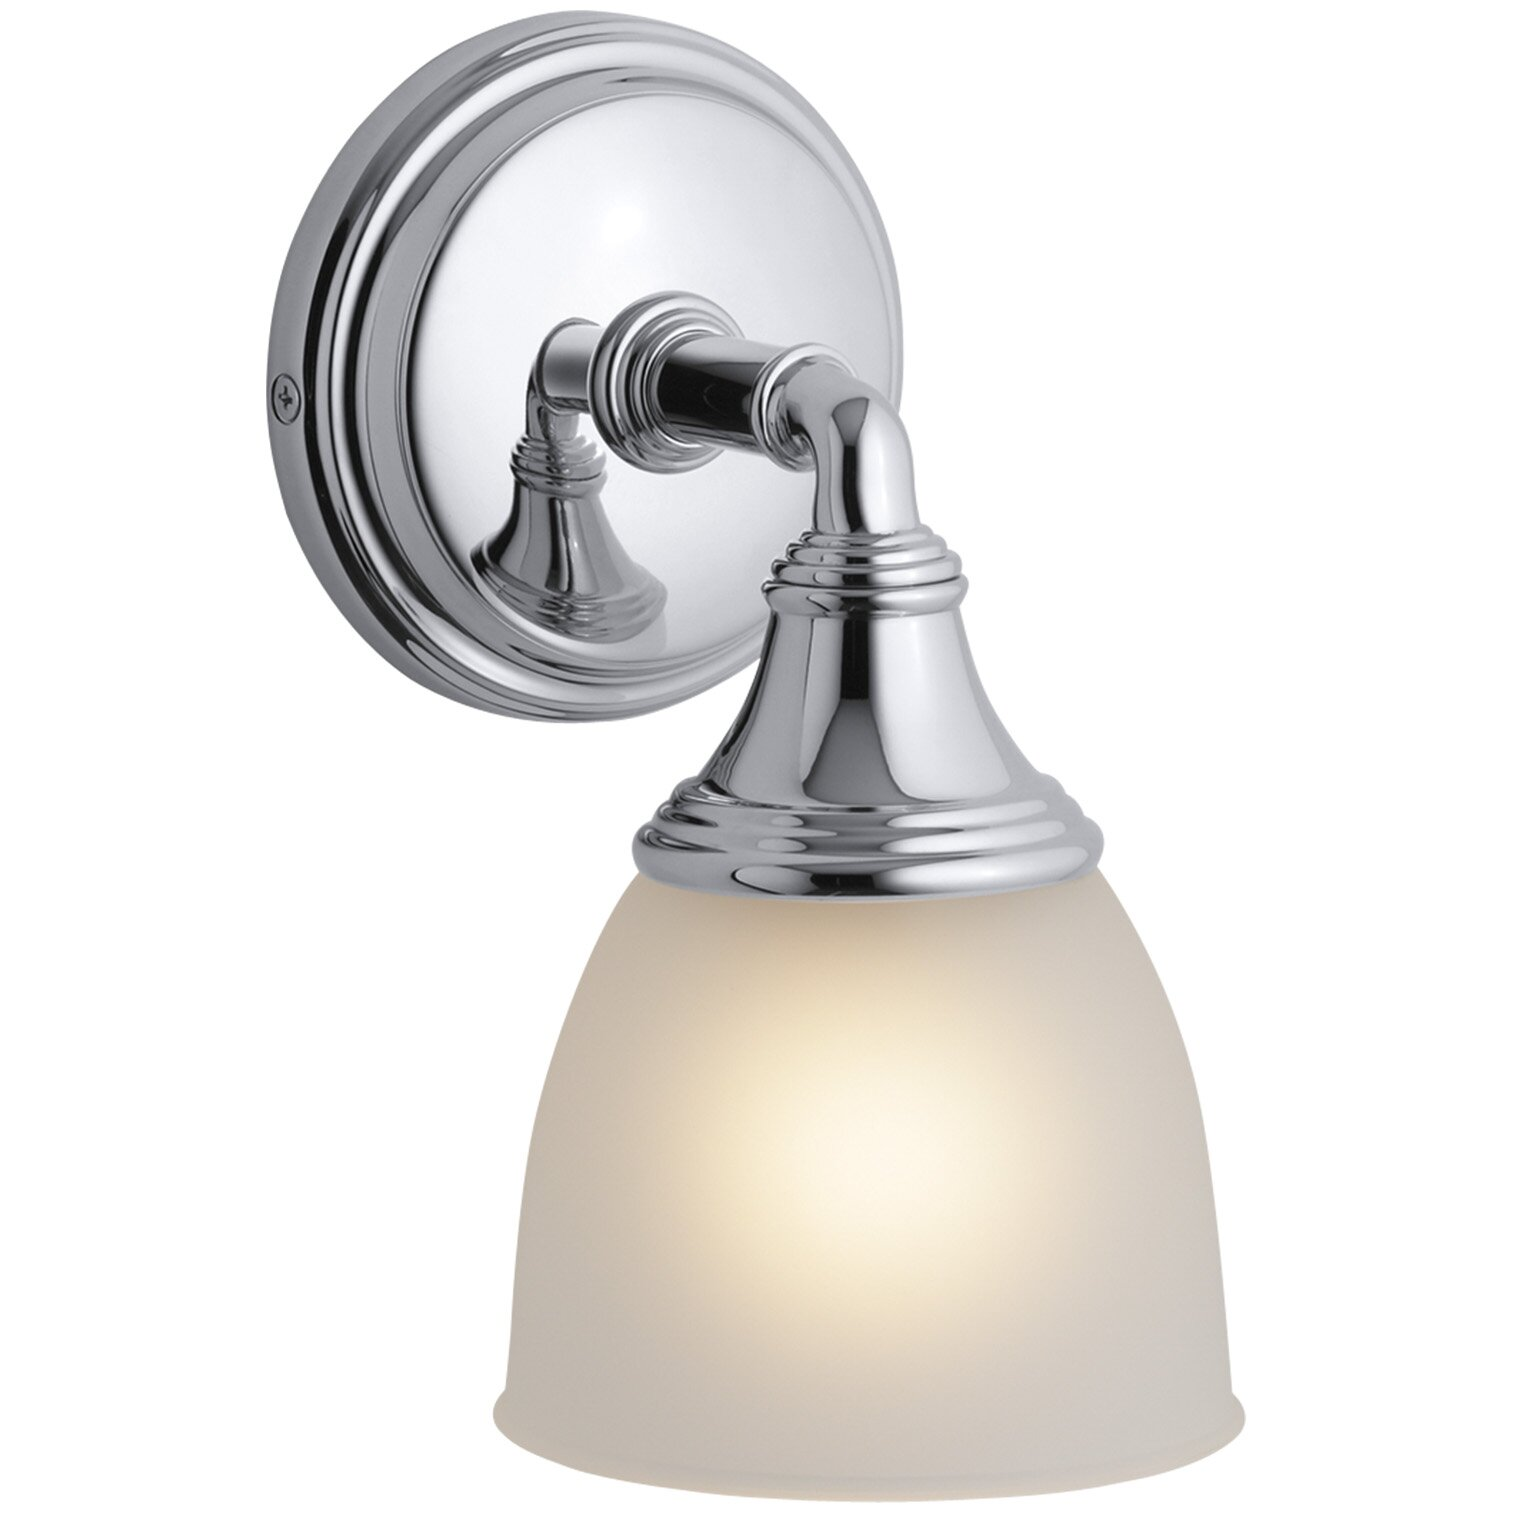 Creative Lighting P297115 Polished Chrome TwoLight Reversible Bathroom